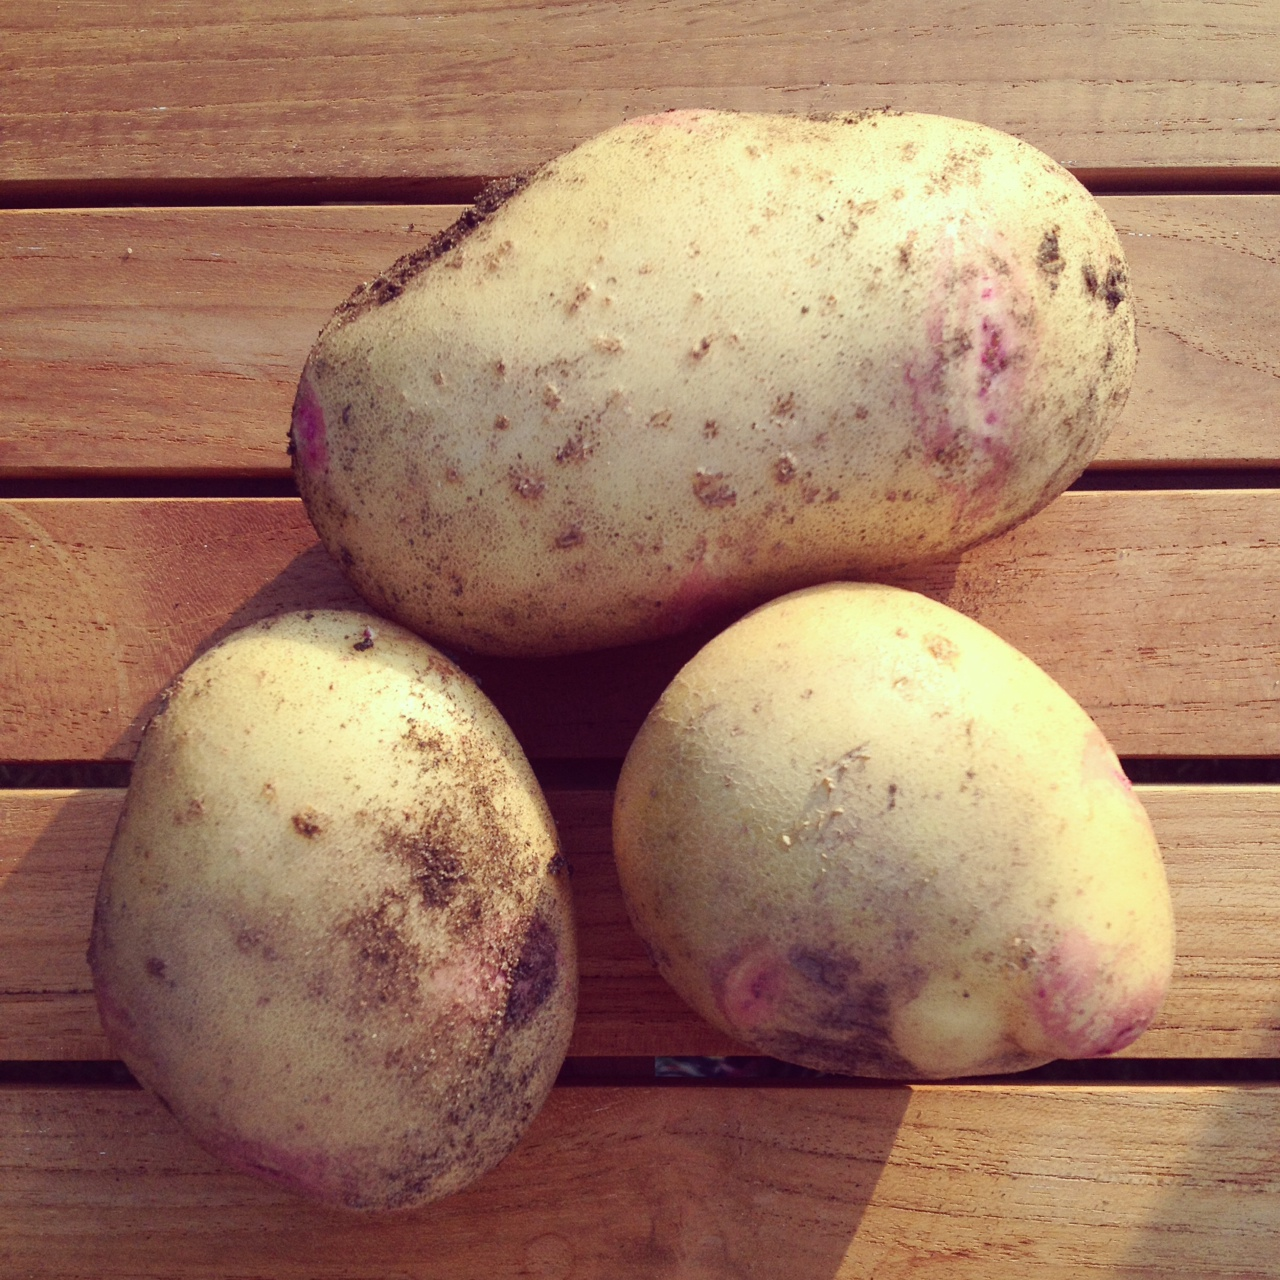 Picasso main crop potatoes